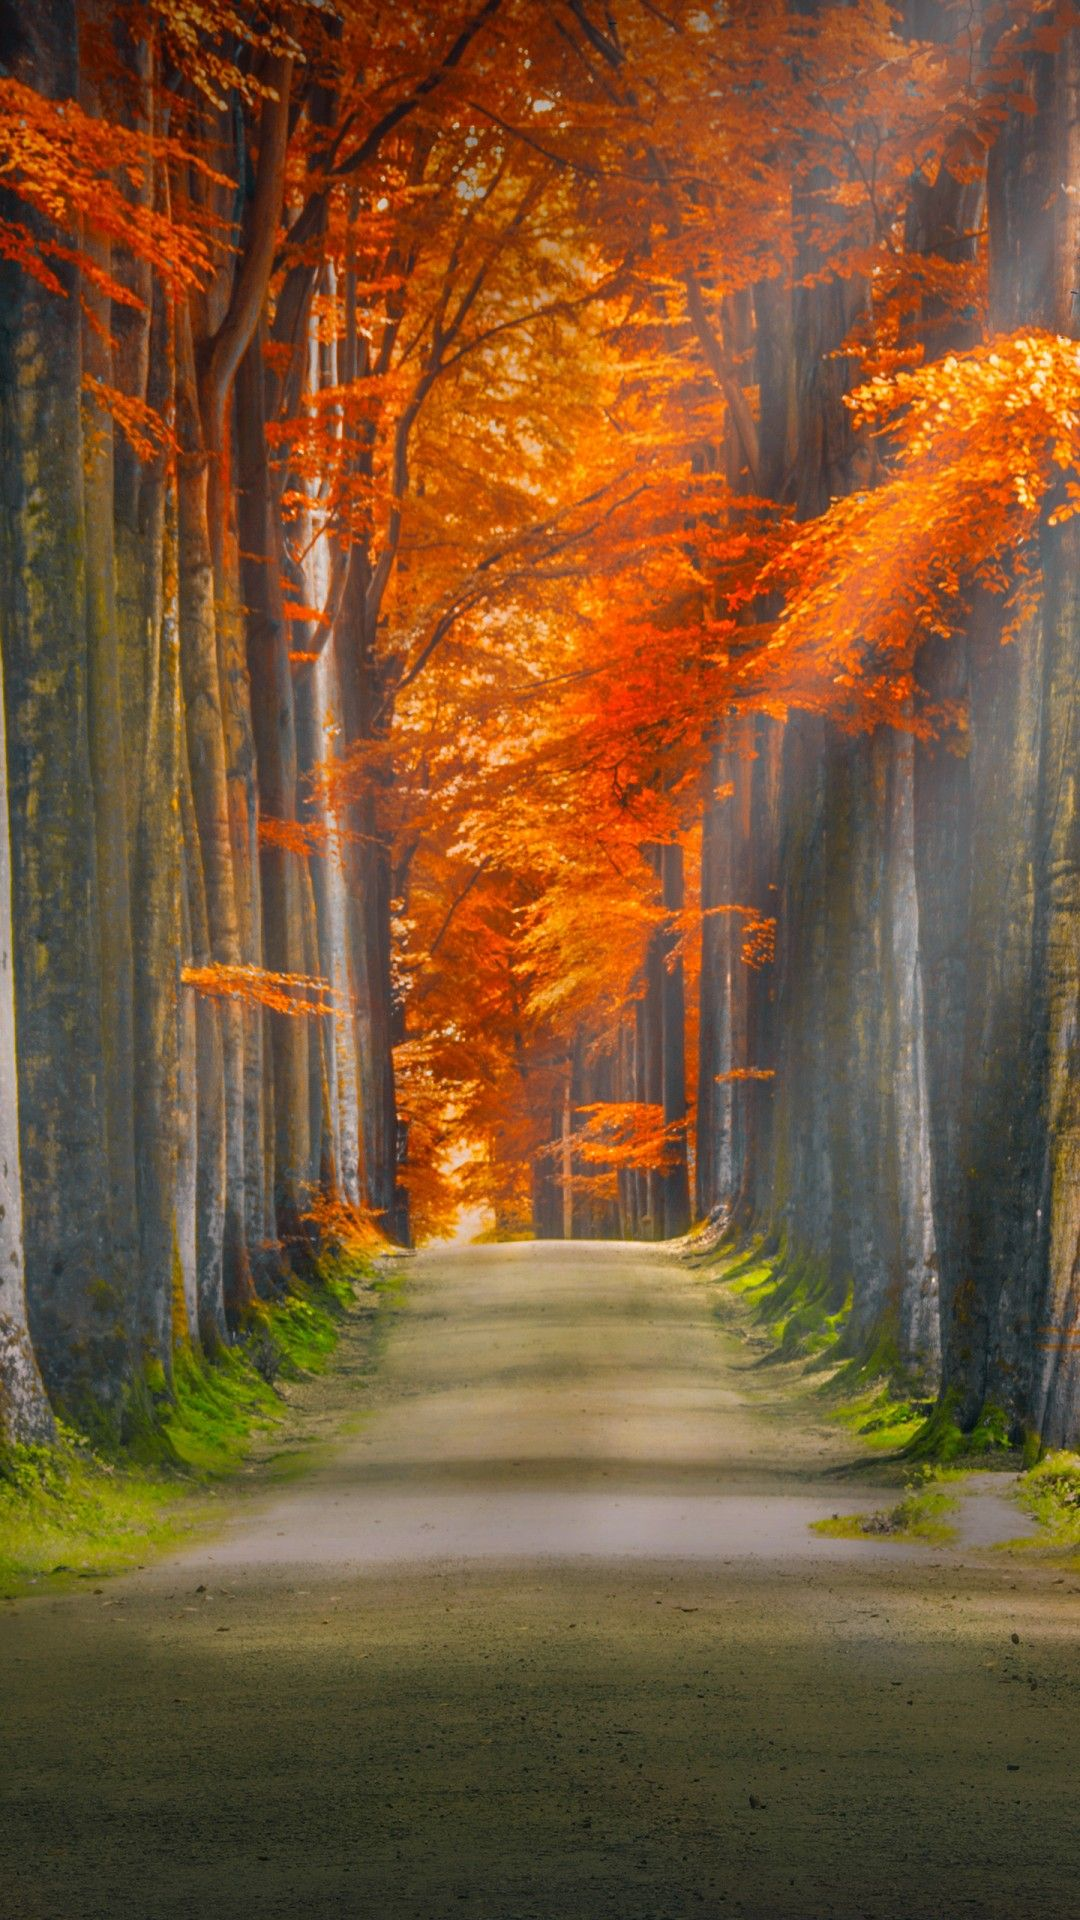 The Wallpapers Autumn Road